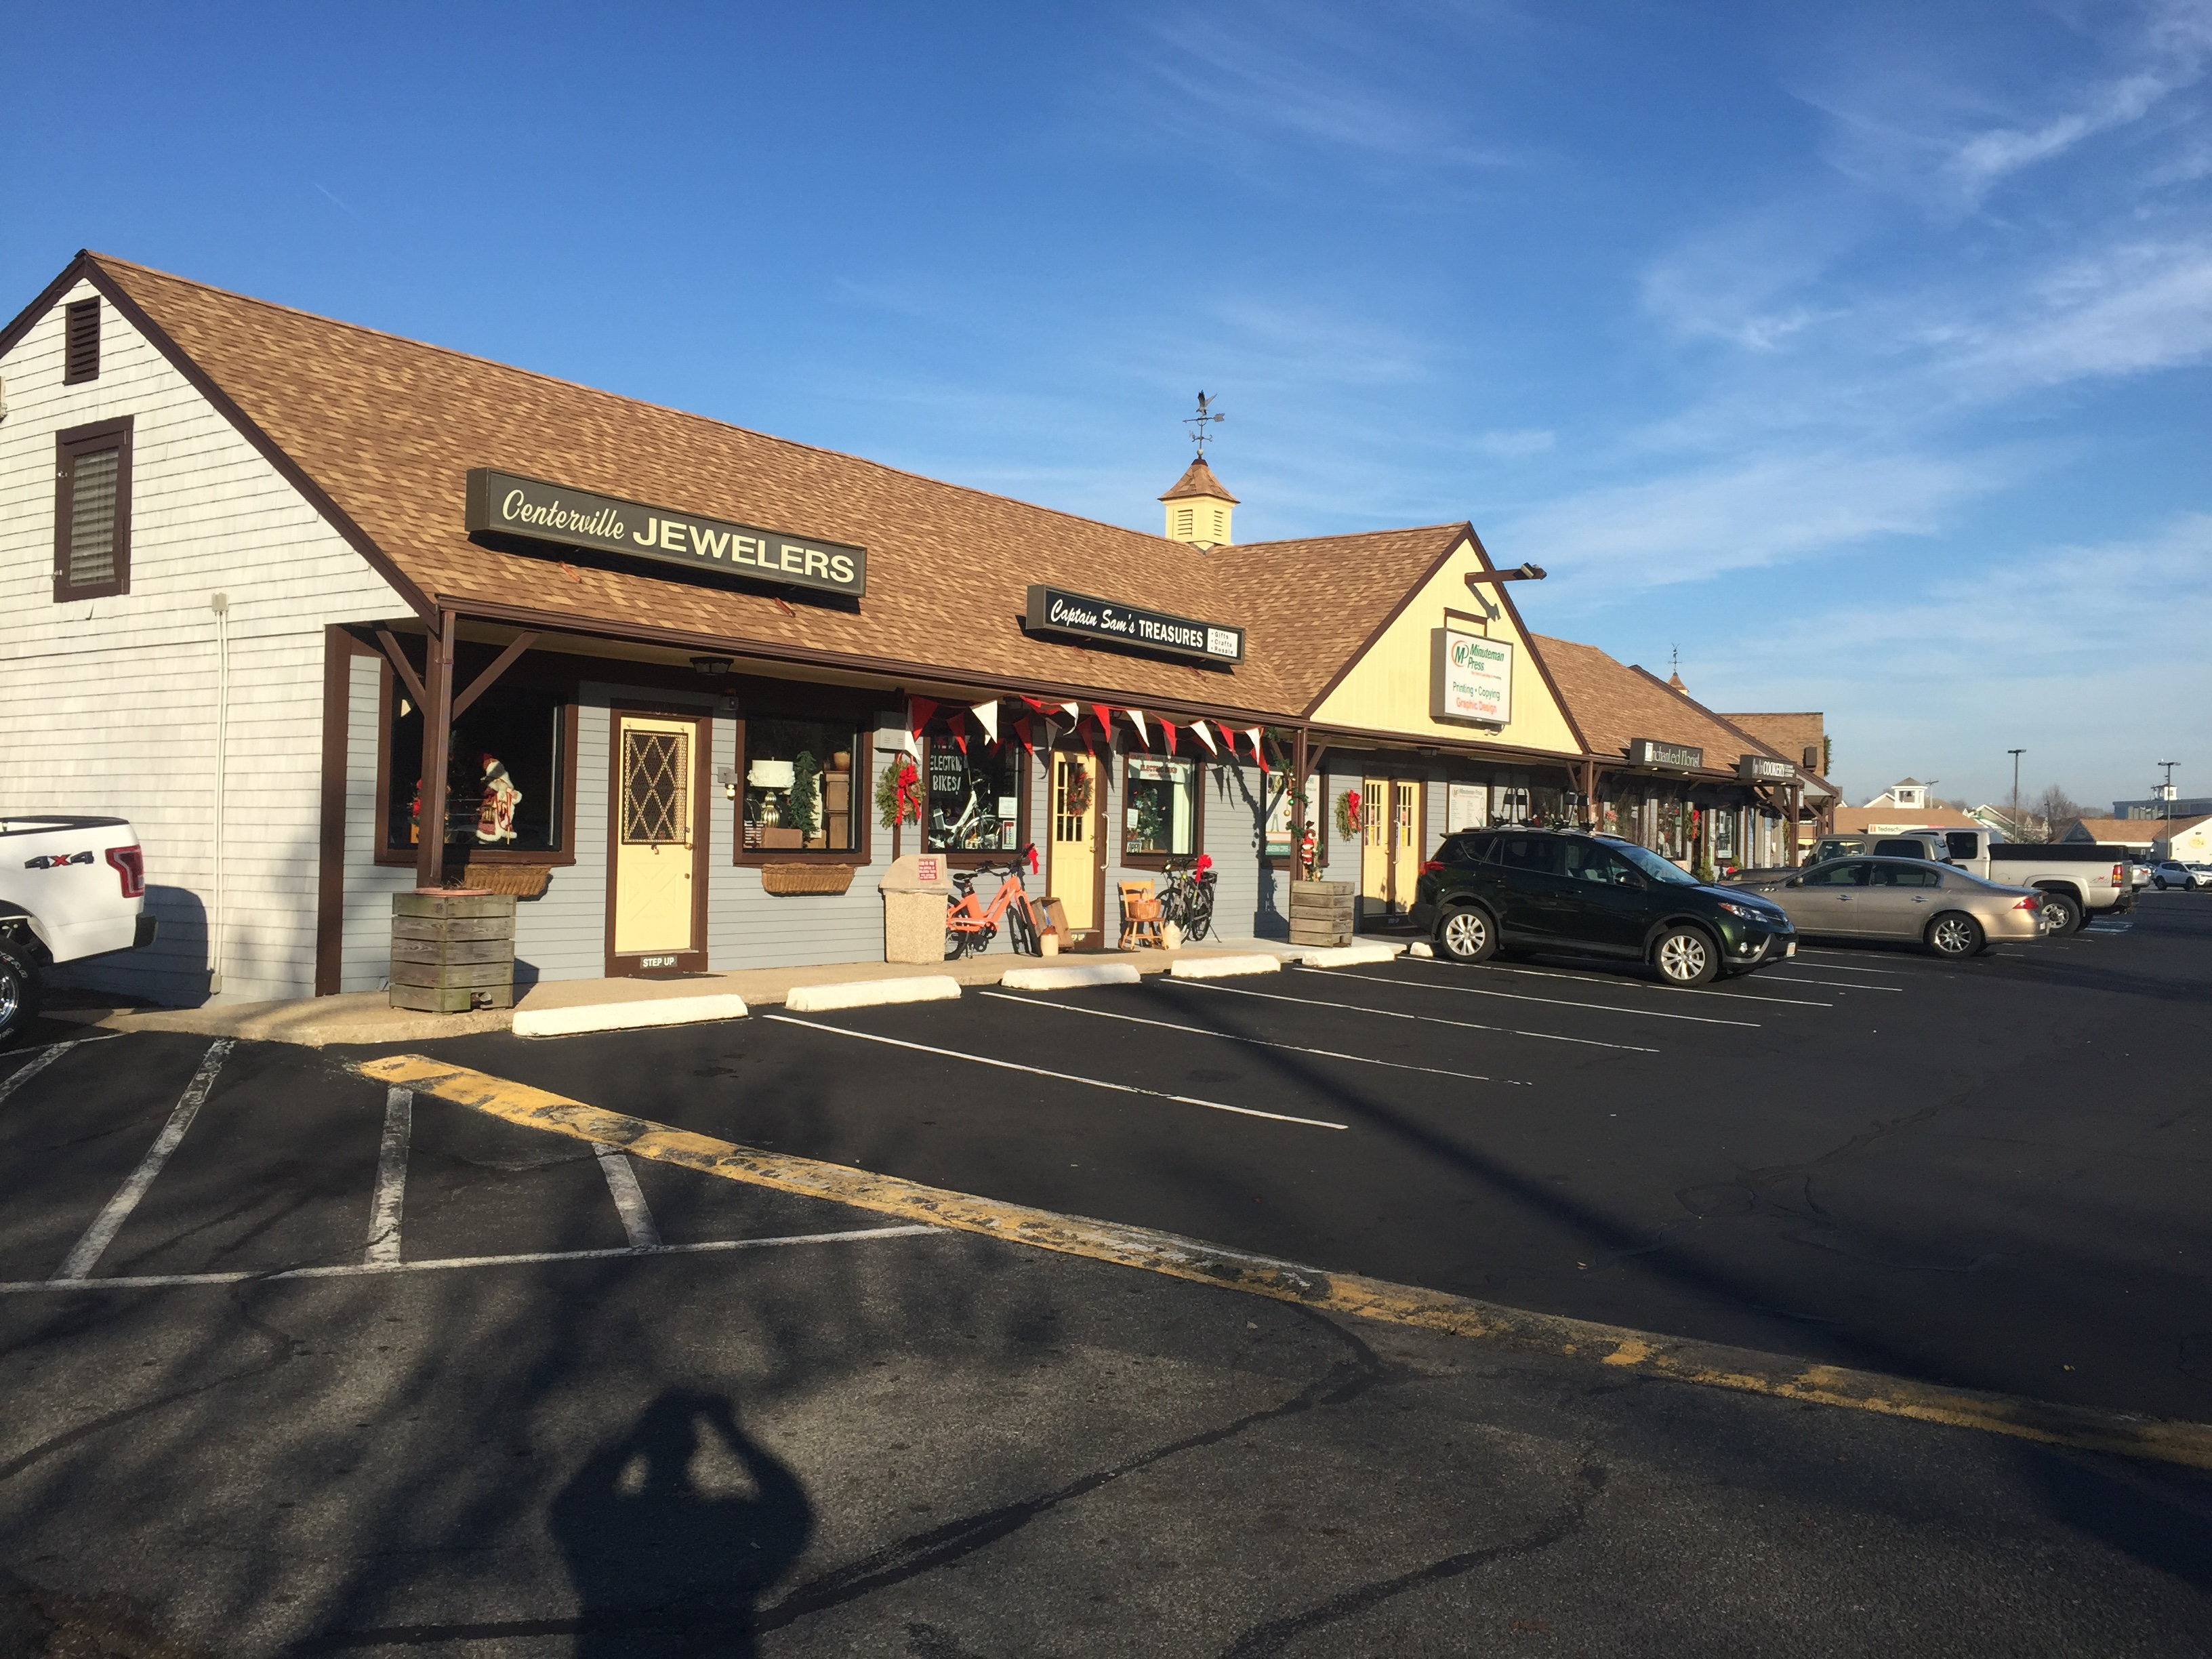 Centerville plaza jewelers